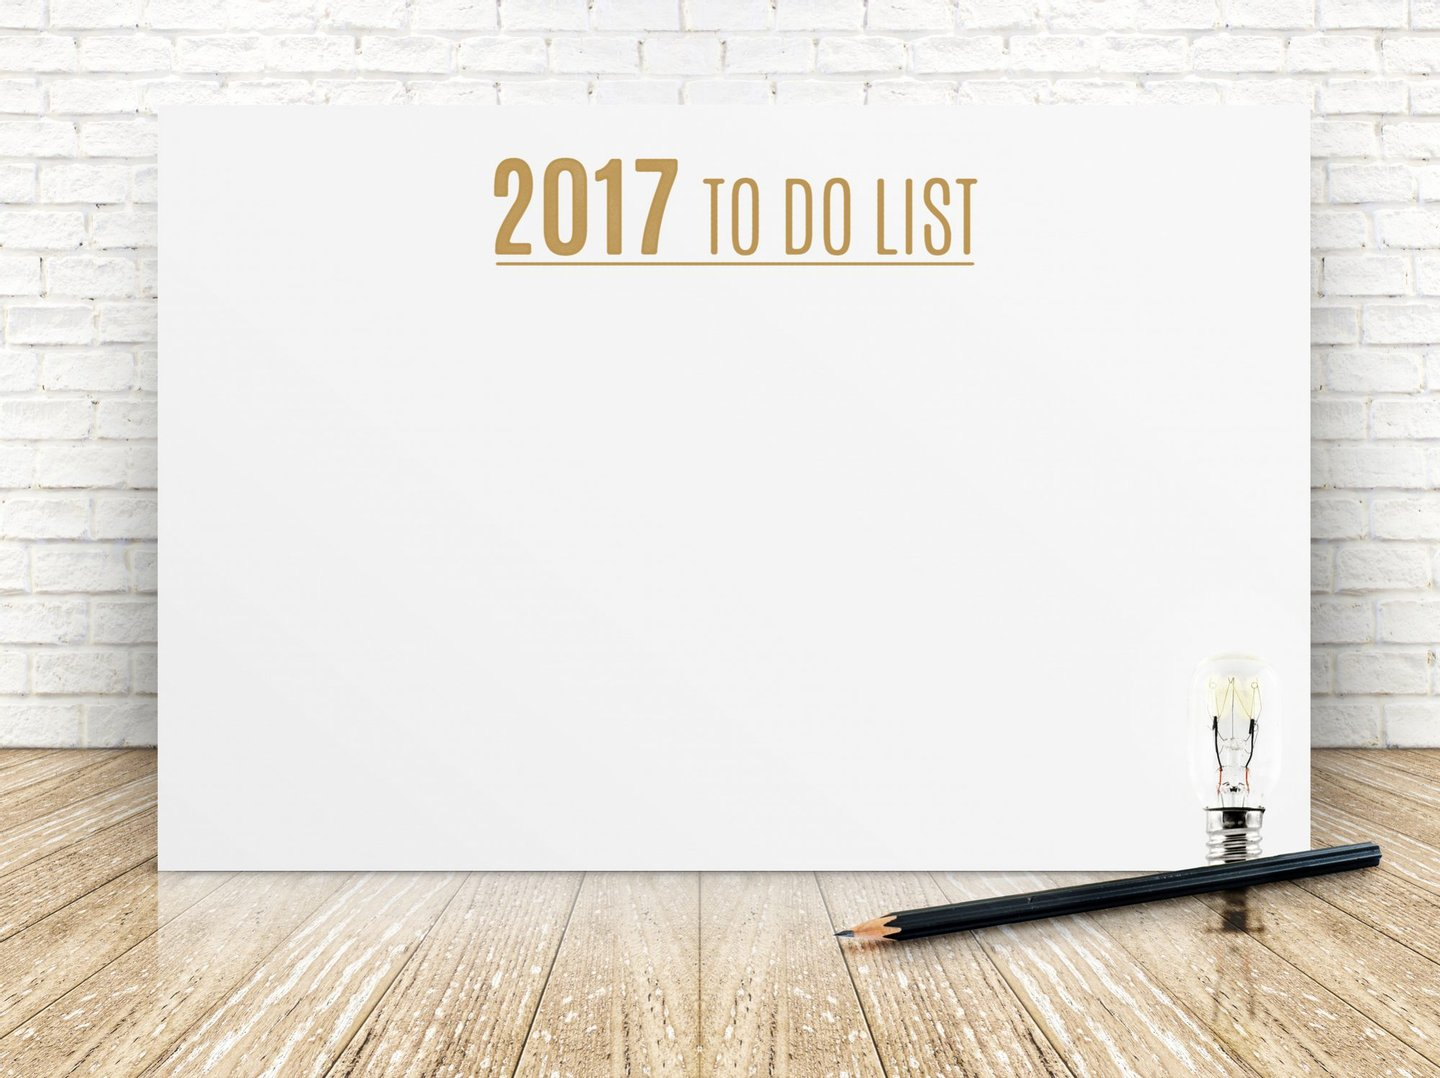 New Year's Day, Wishing, Forecasting, List, To Do List, Blank, Poster, Brick, Light Bulb, Planning, Determination, Aspirations, White, Paper, Wood - Material, Ideas, Business, Indoors, Horizontal, Flooring, Pencil, New Year's Eve, 2017, Mock Up, New Year, Note,